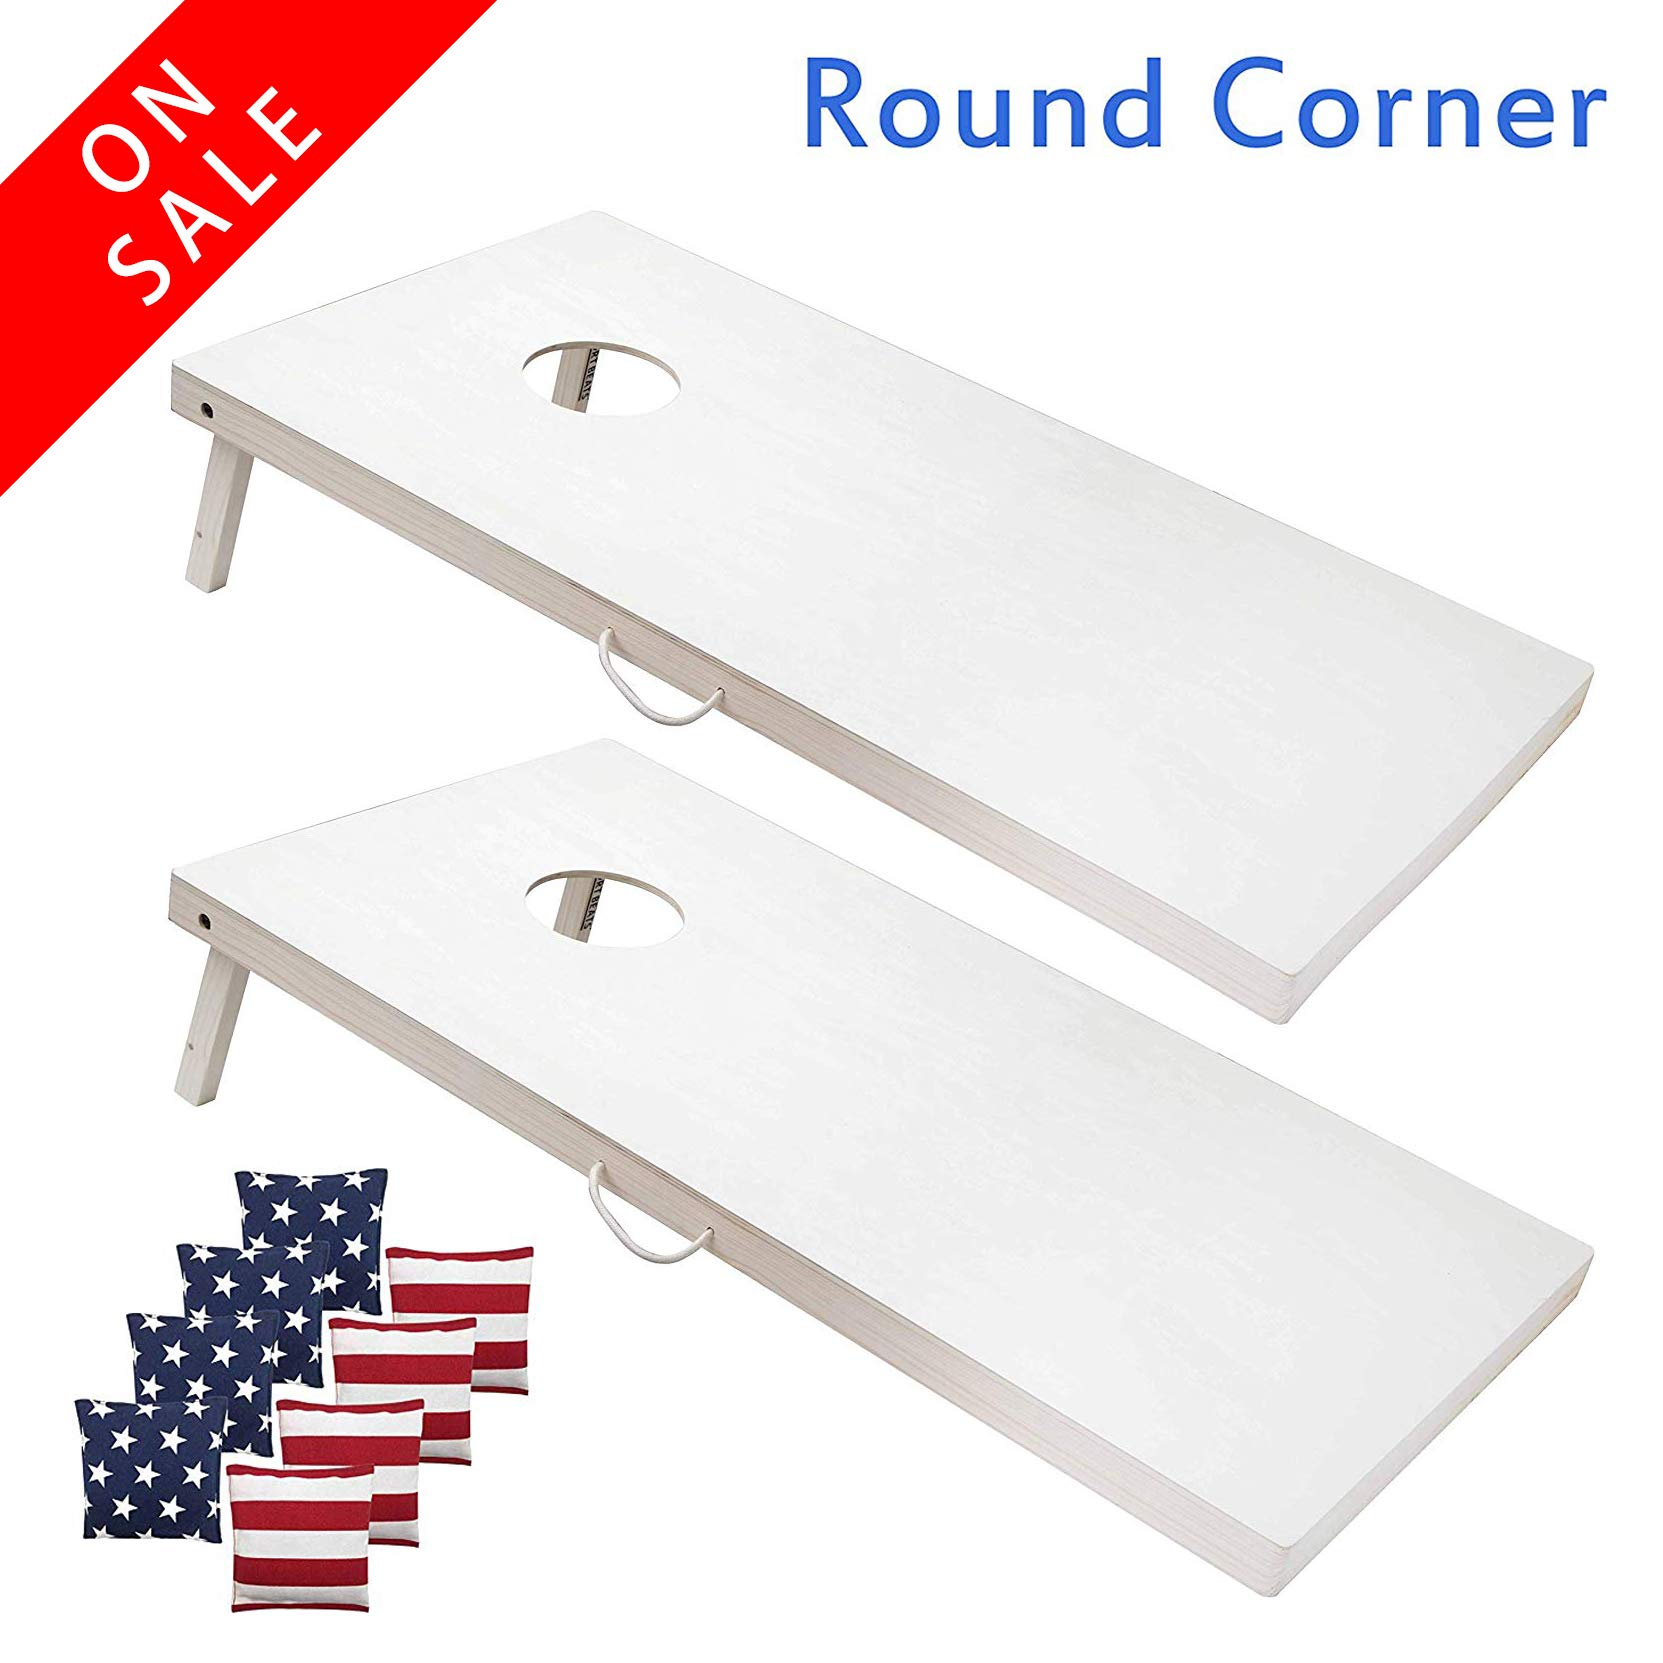 SPORT BEATS 4 x 2 Ft Regulation Cornhole Boards Cornhole Game Set -Tournament Size Wood Corn Hole Board Game-3 Options to Choose from (4 × 2 Boards(No Lights).) by SPORT BEATS